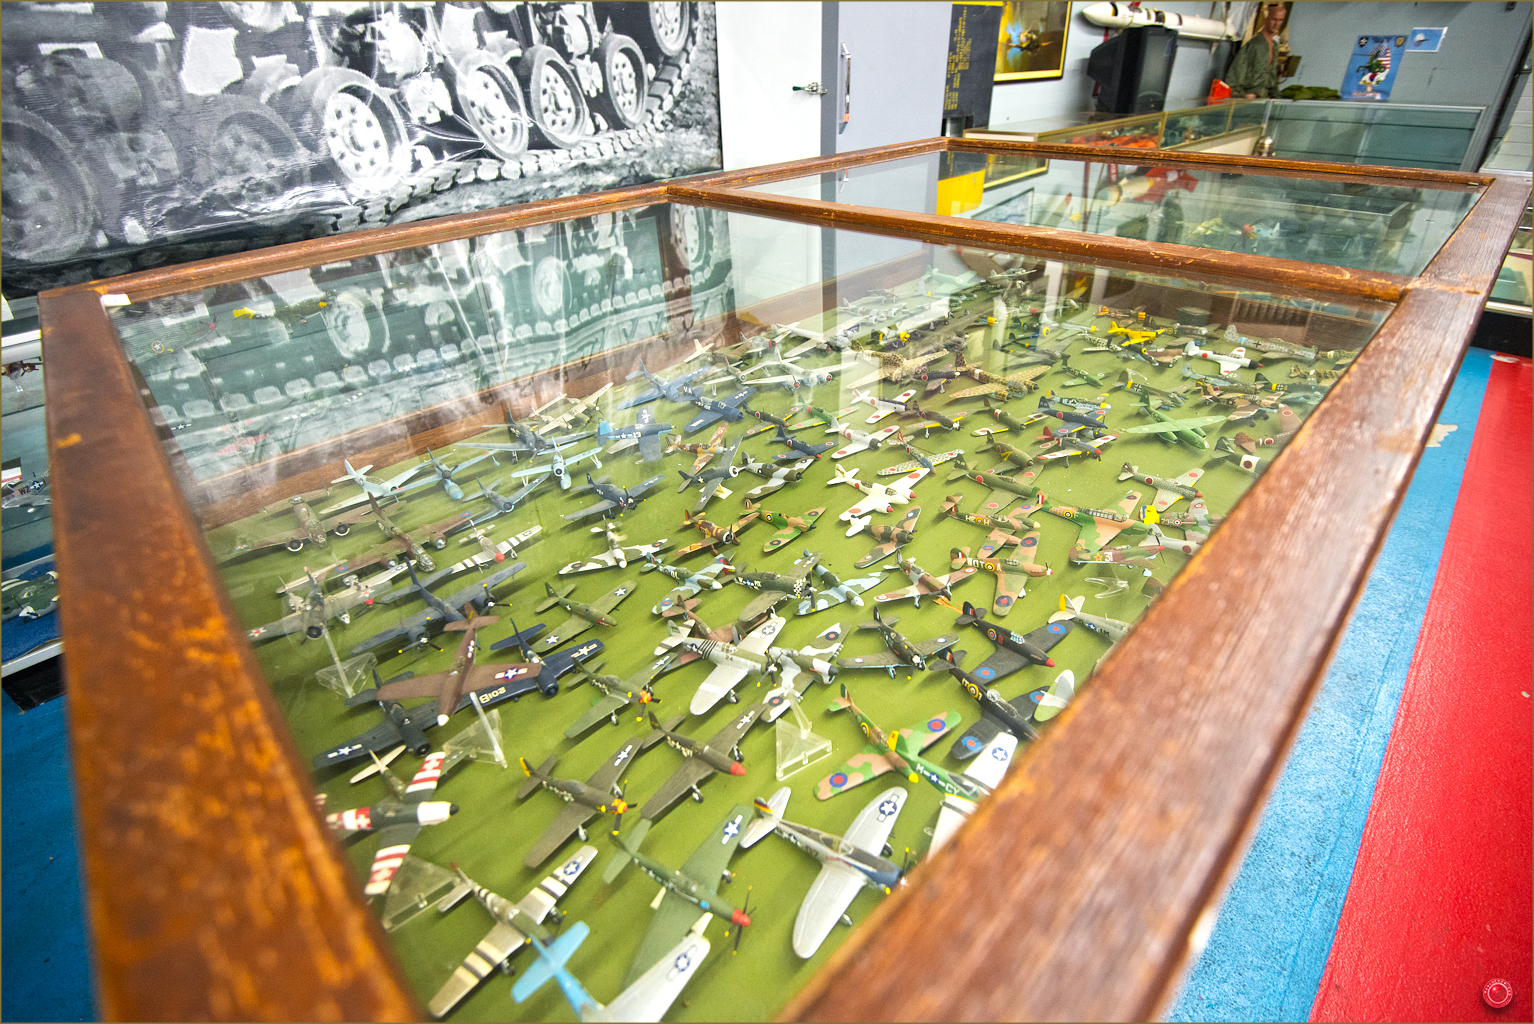 107 Rusell Military Museum Model Airplanes 2